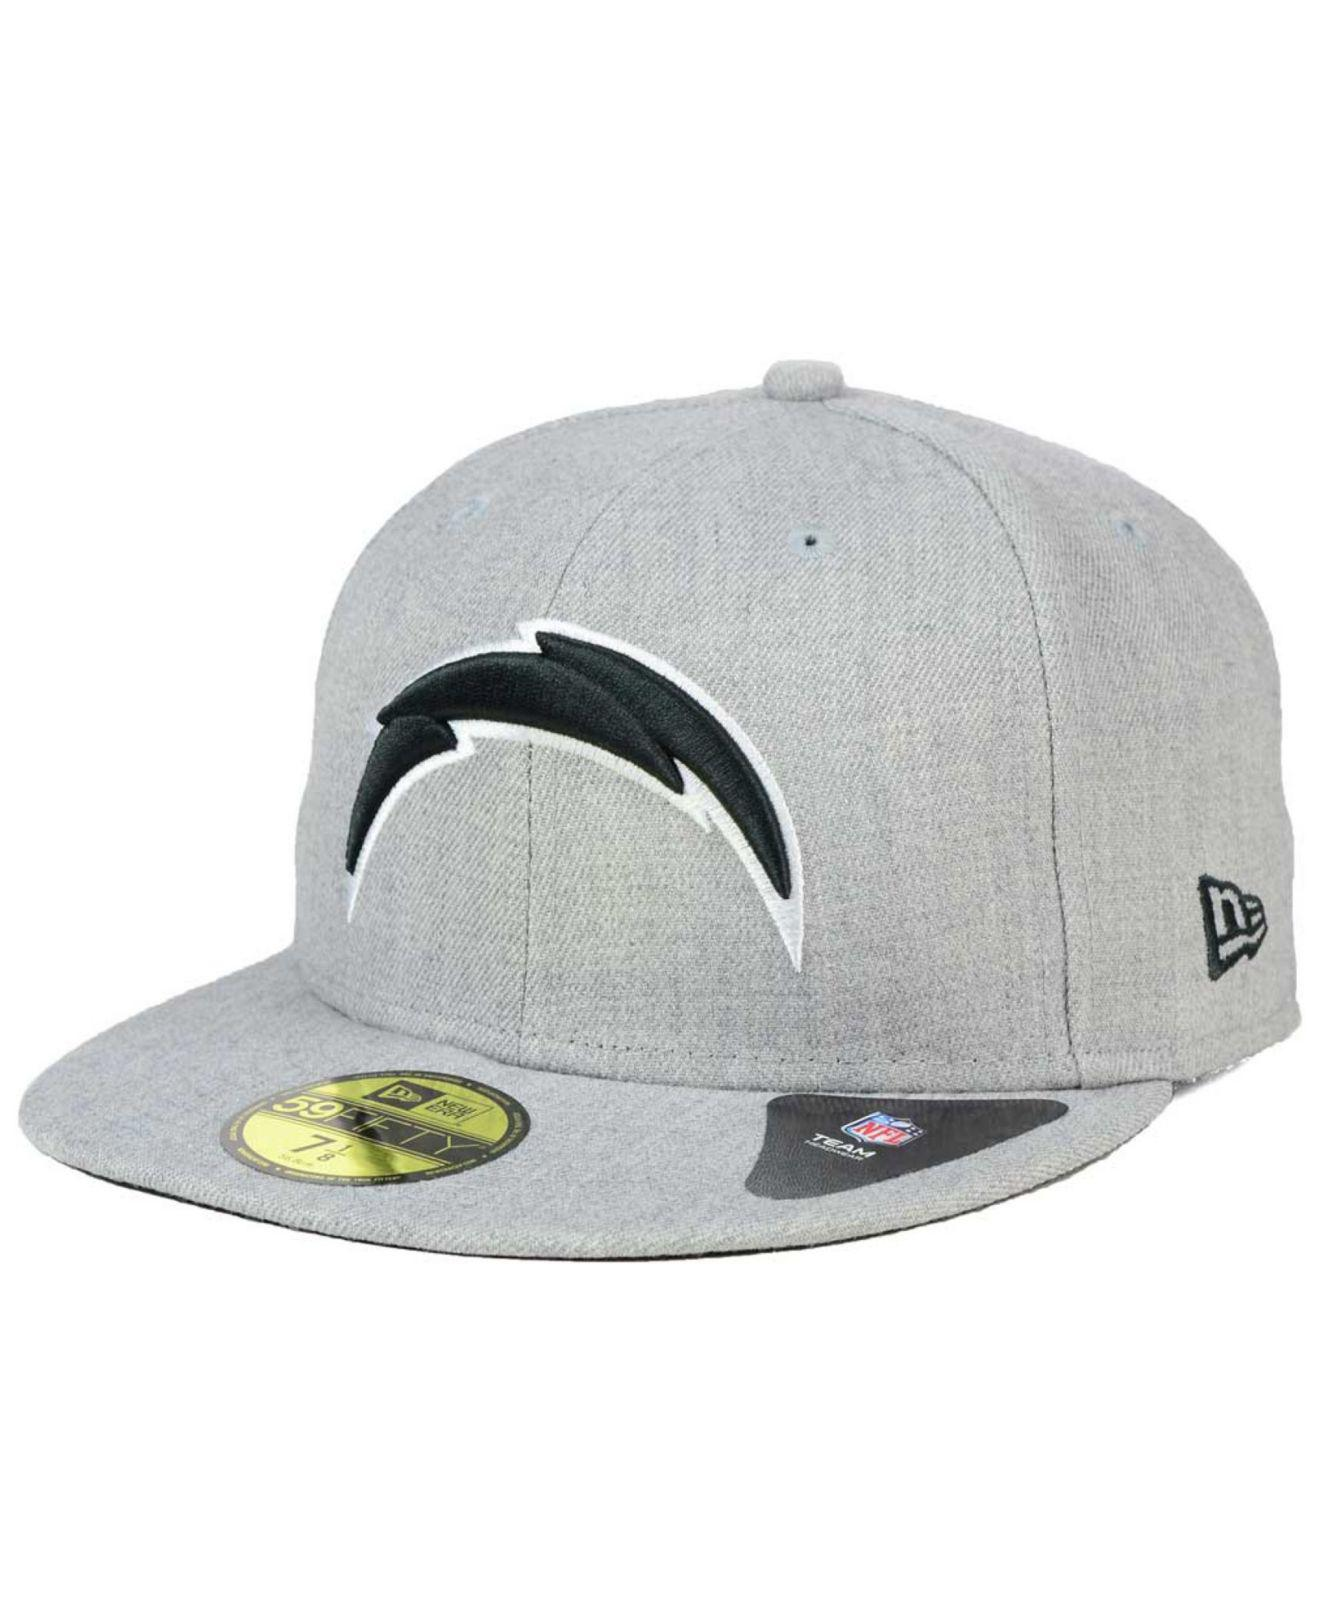 9630a326aec Lyst - KTZ San Diego Chargers Heather Black White 59fifty Cap in ...